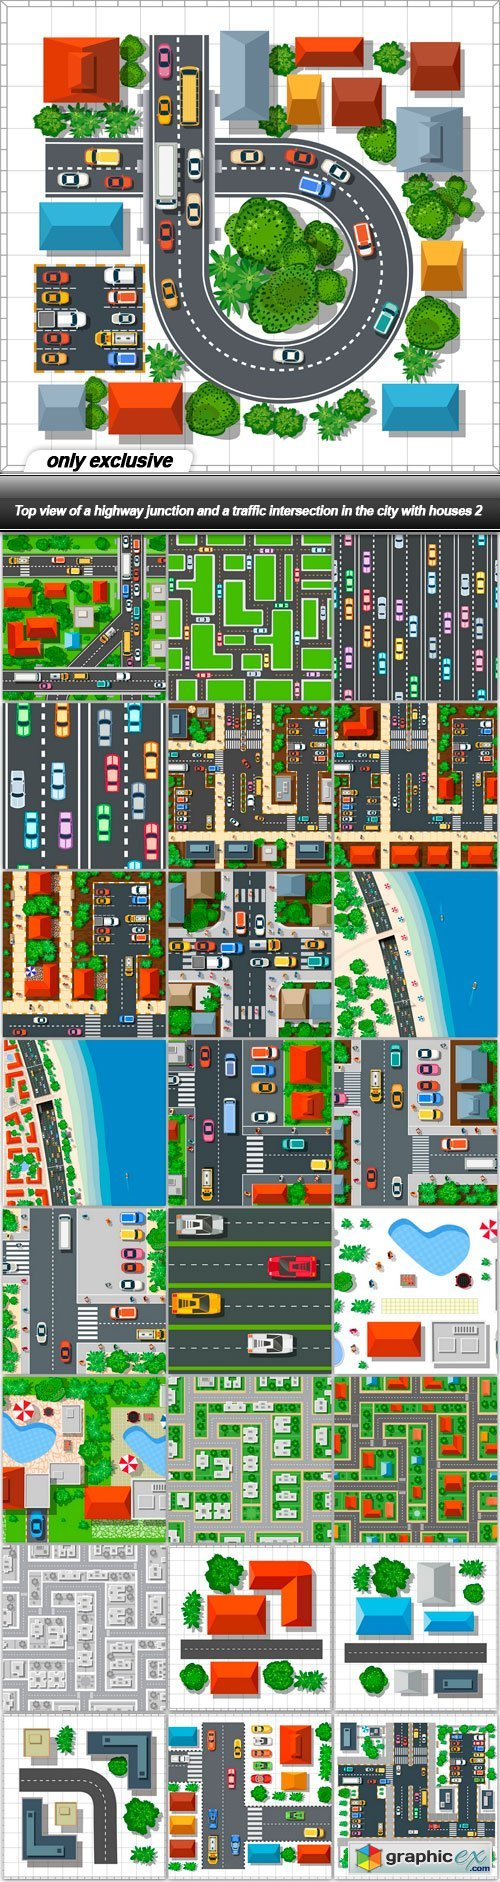 Top view of a highway junction and a traffic intersection in the city with houses 2 - 25 EPS